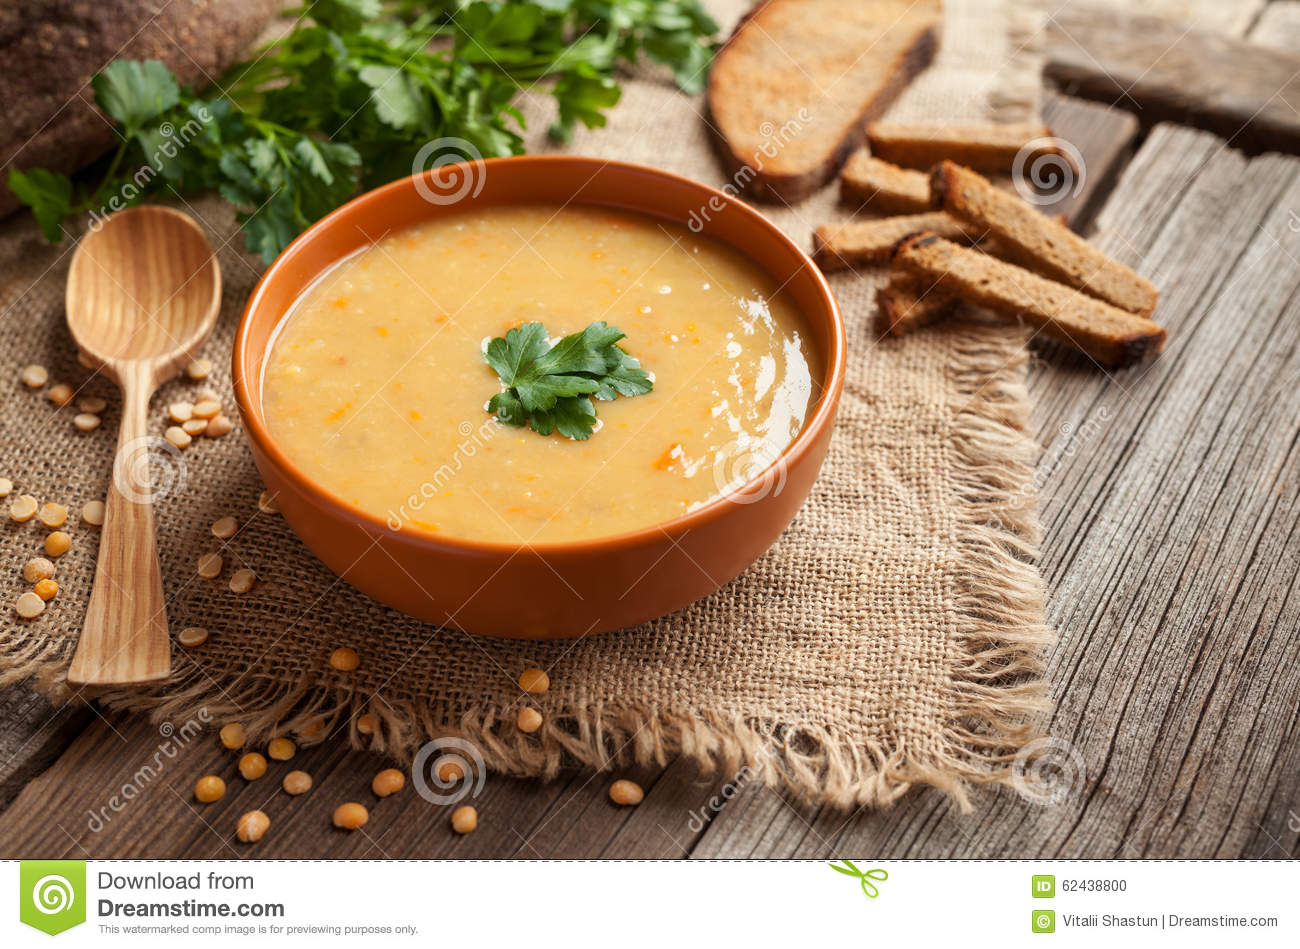 Pea soup healthy vegetarian organic food recipe stock photo image download pea soup healthy vegetarian organic food recipe stock photo image of food dinner forumfinder Images